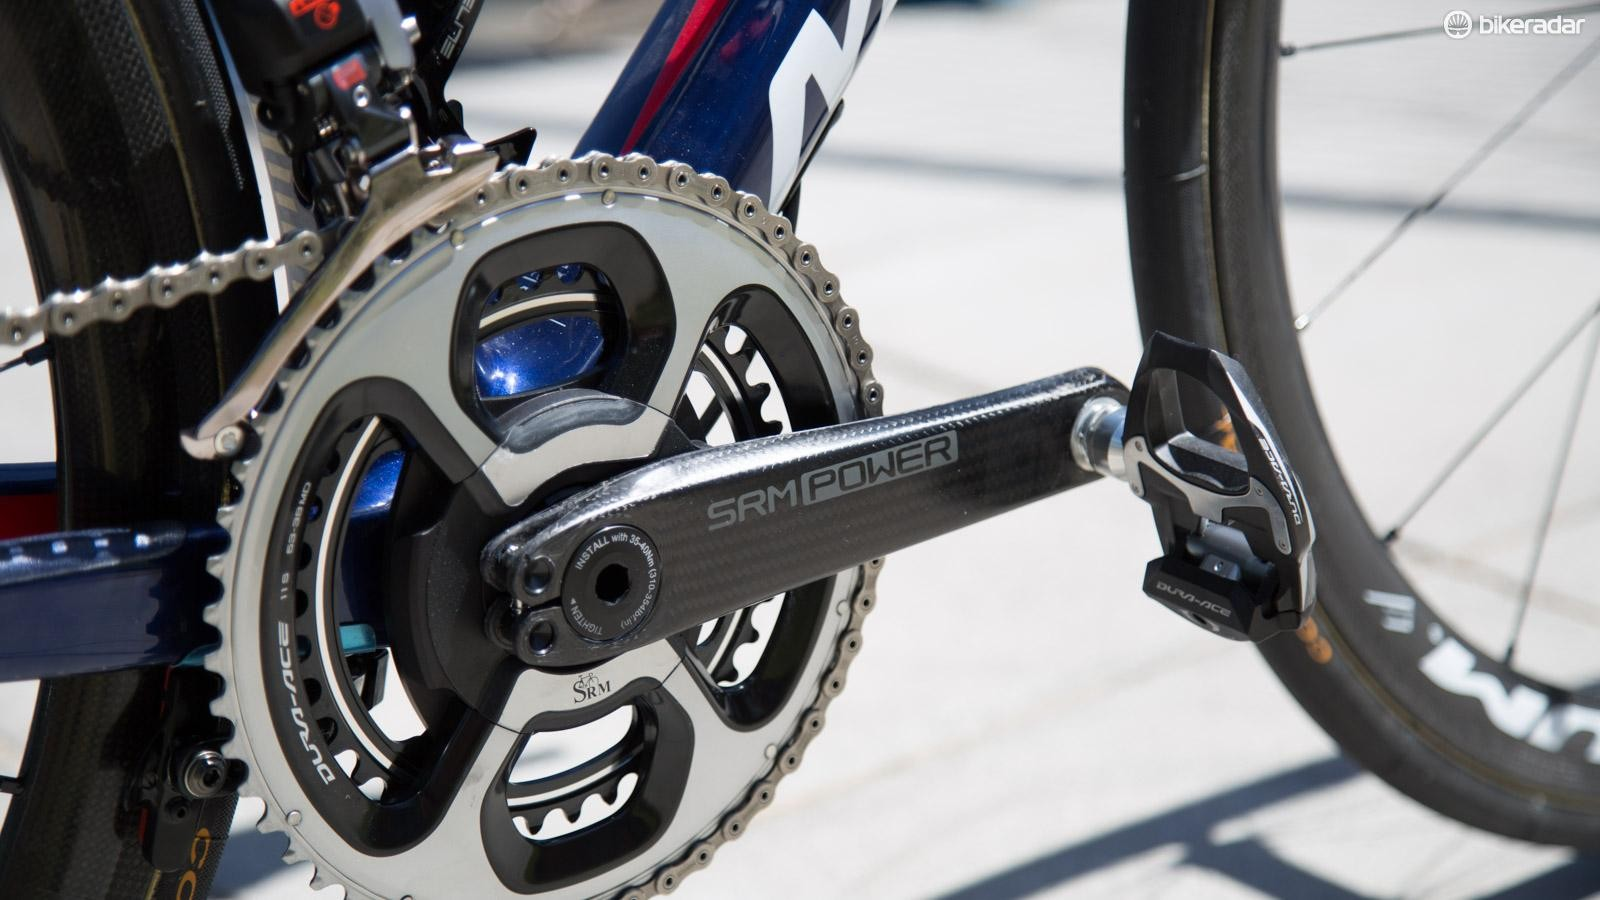 Bahrain Merida's bikes are sporting SRM's new ultra light power meter. While the cranks are labeled SRM Power, they look an awful lot like THM carbon cranks and are claimed to weigh 99g each